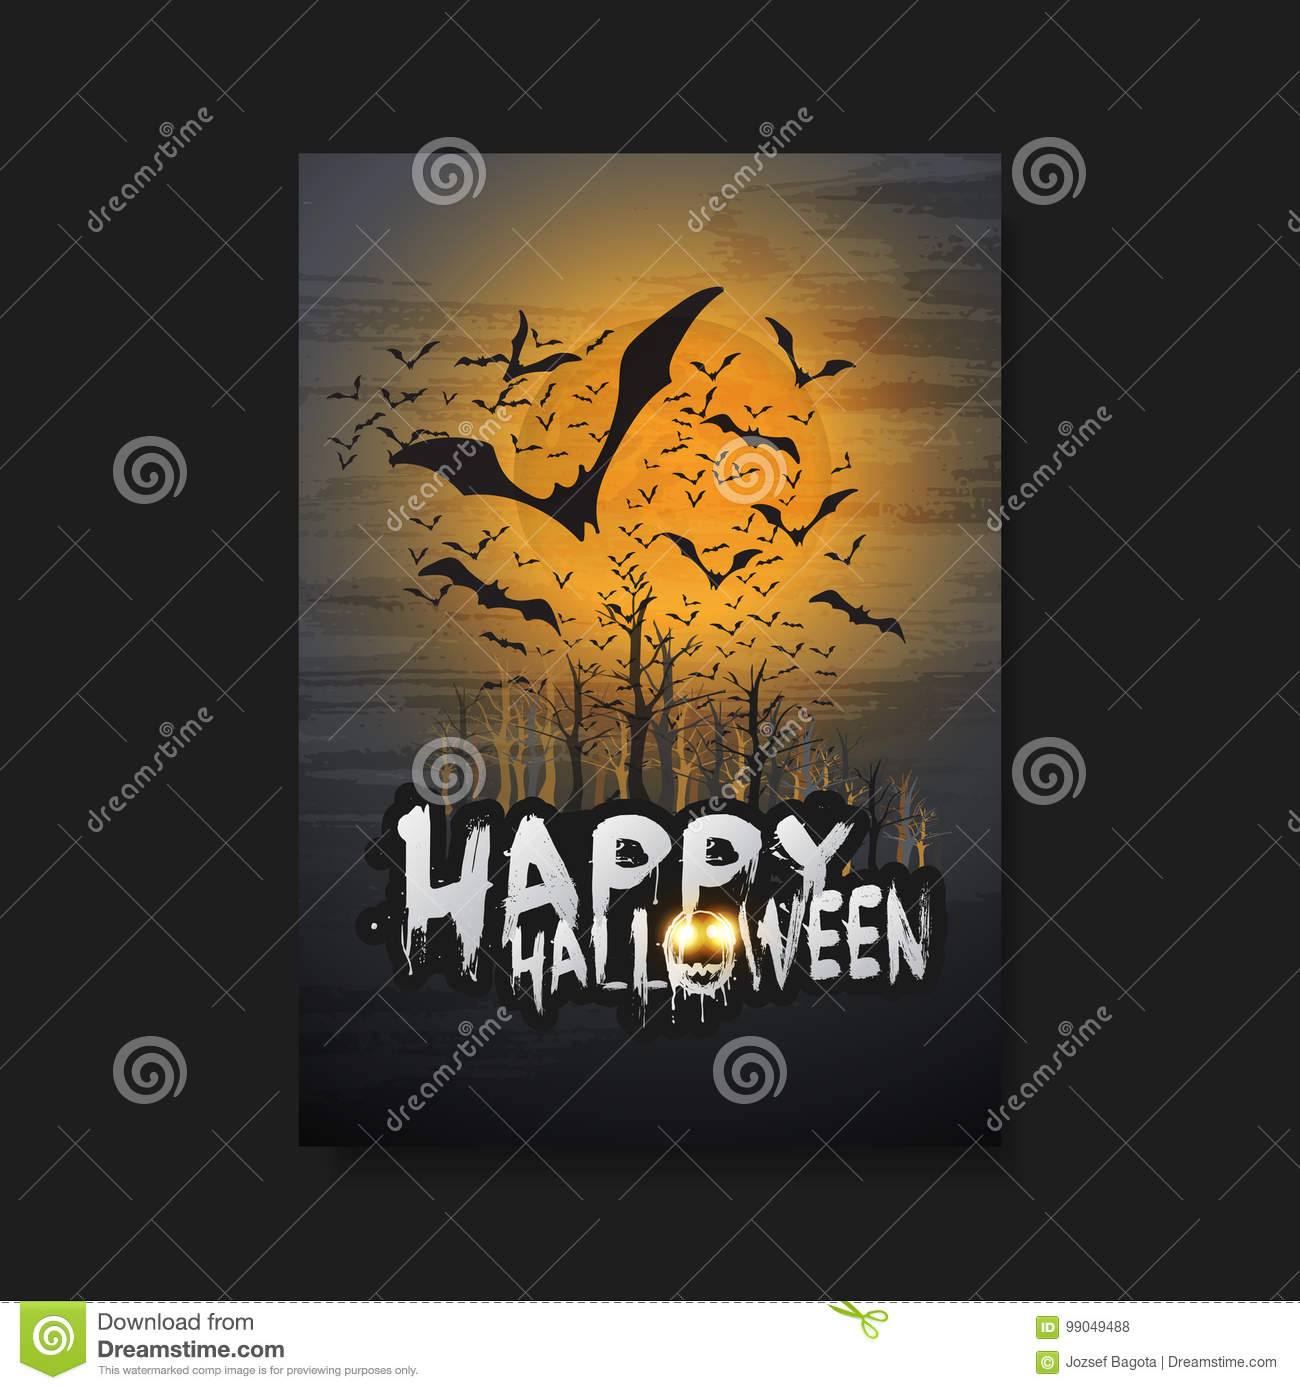 happy halloween card, flyer or cover template - flying bats over the